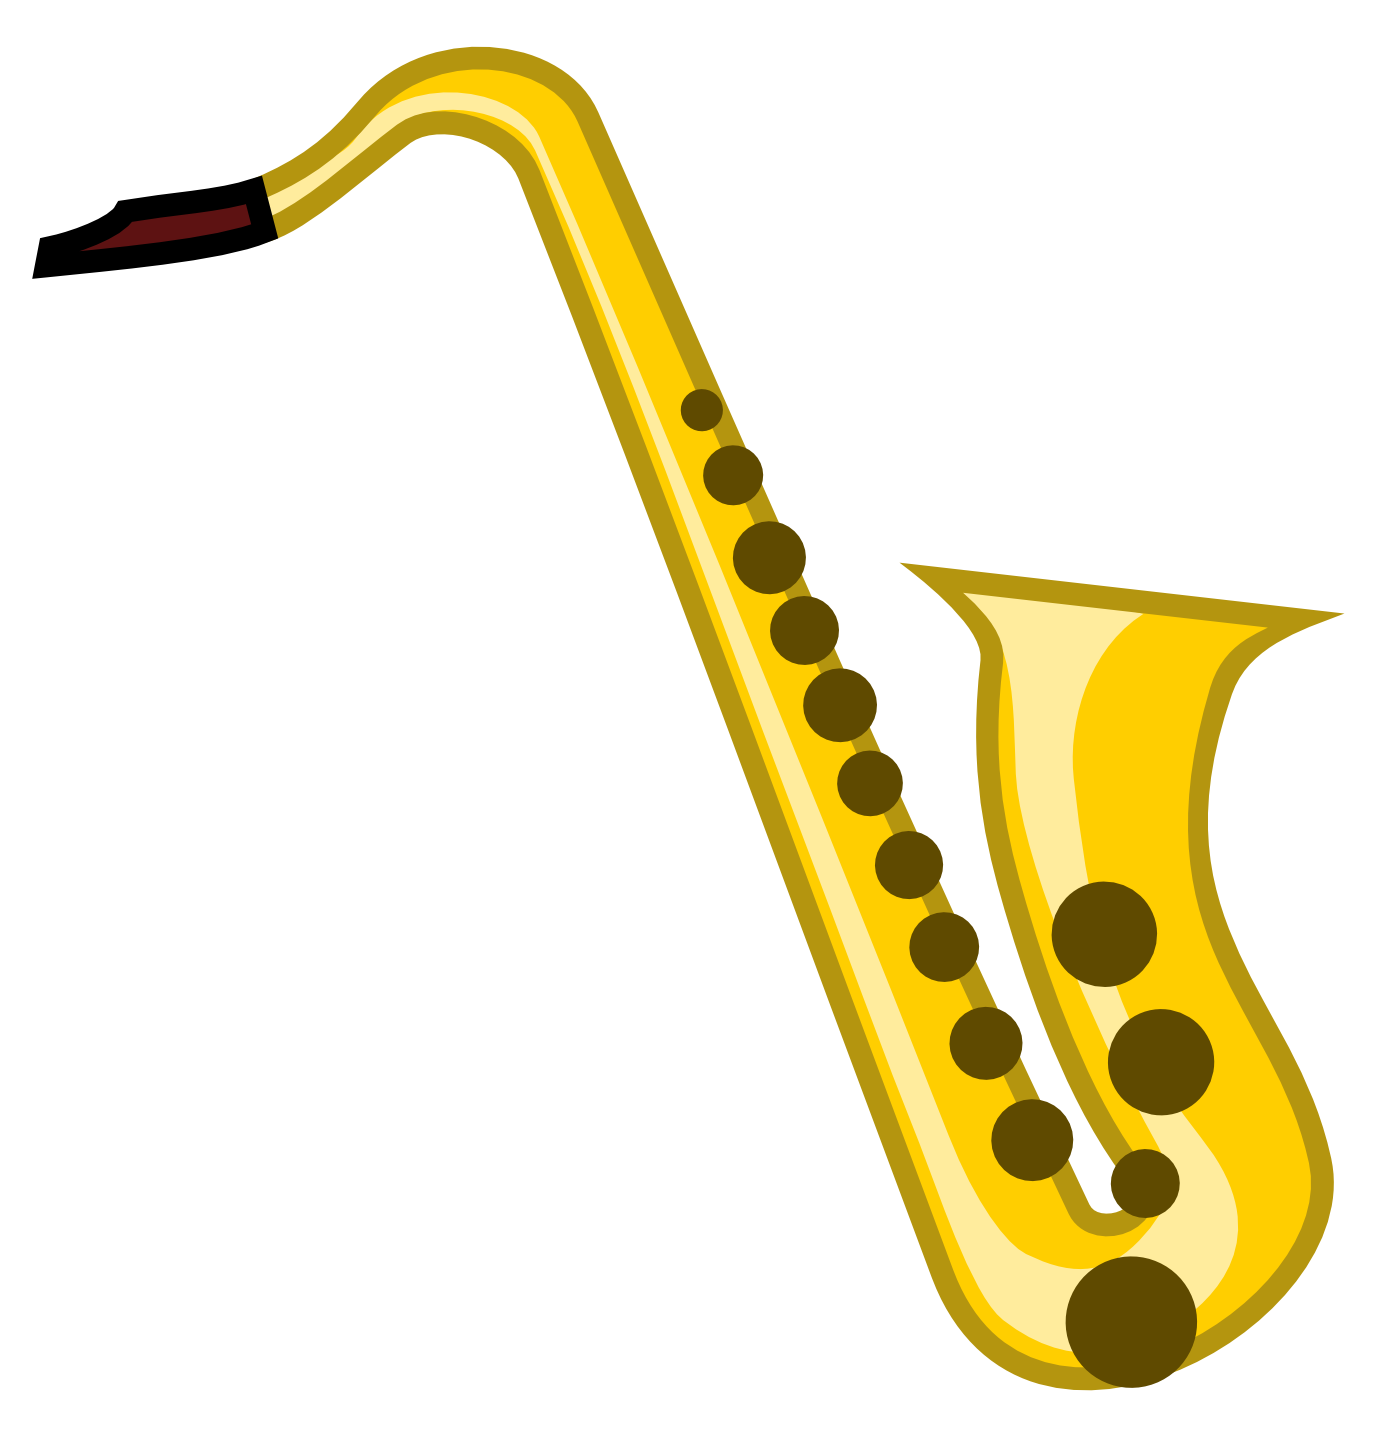 Unprotected sax the best. Xylophone clipart preschool music